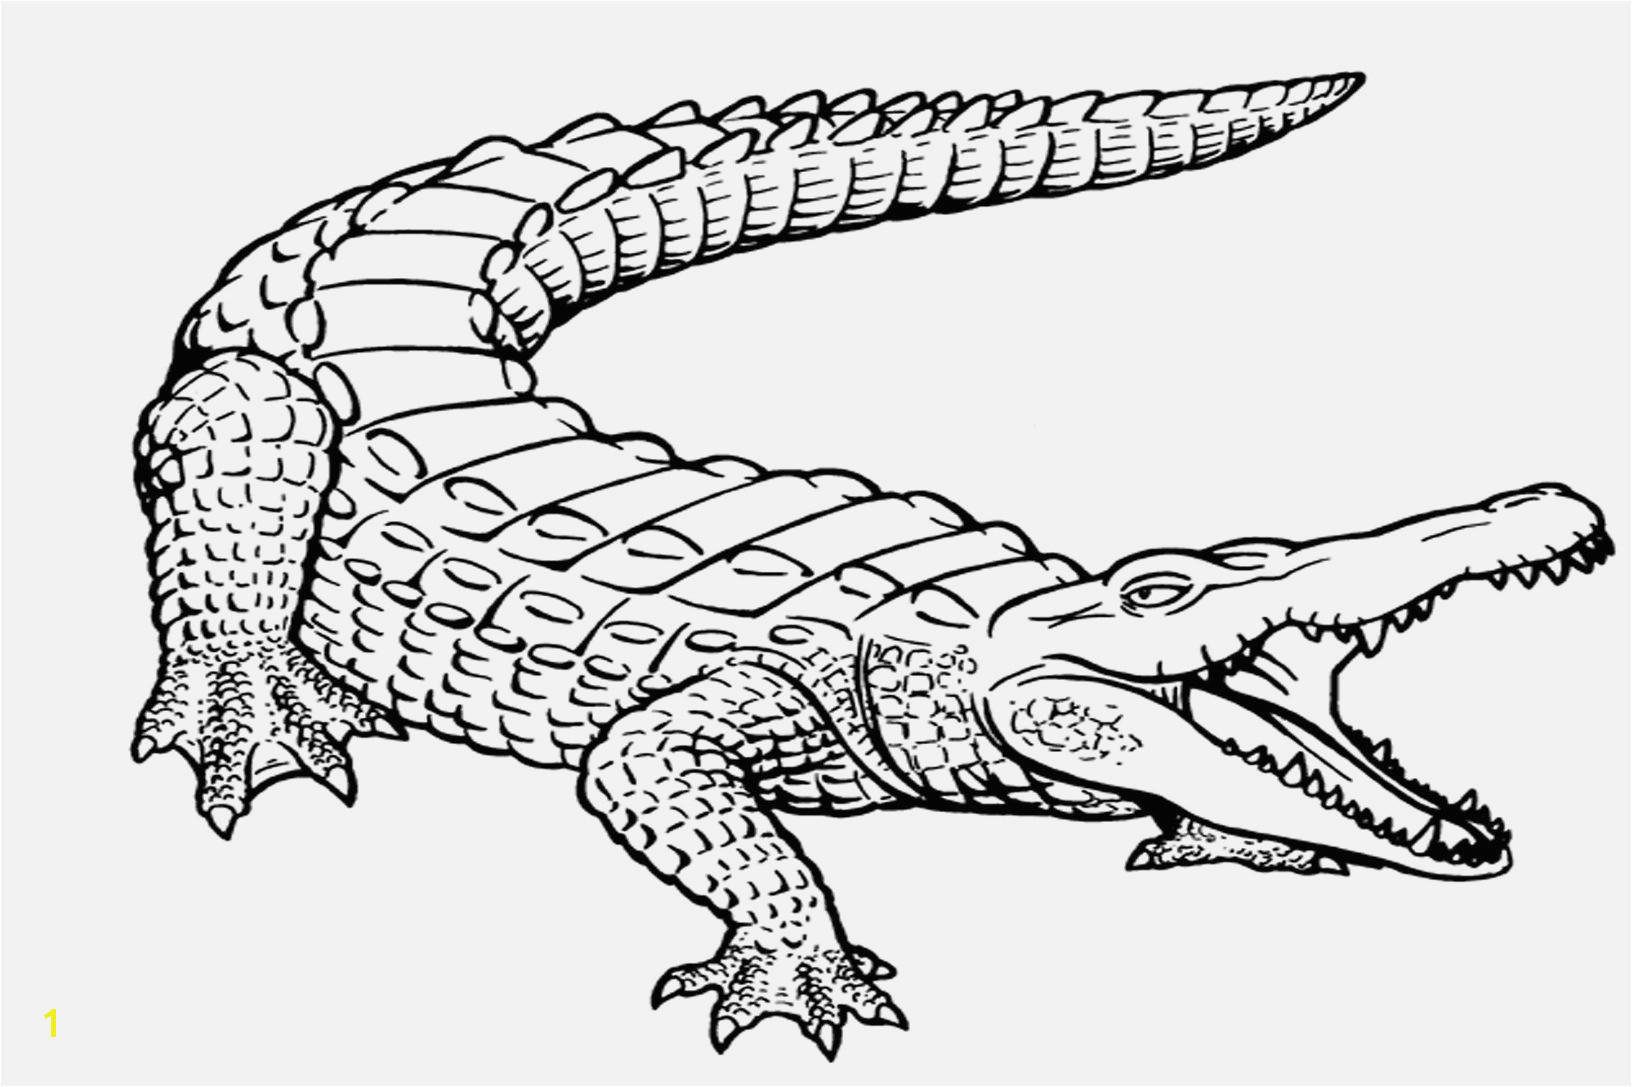 Alligator Coloring Pages Printable Coloring Pages Free Printable Alligator Coloring Pages for Kids